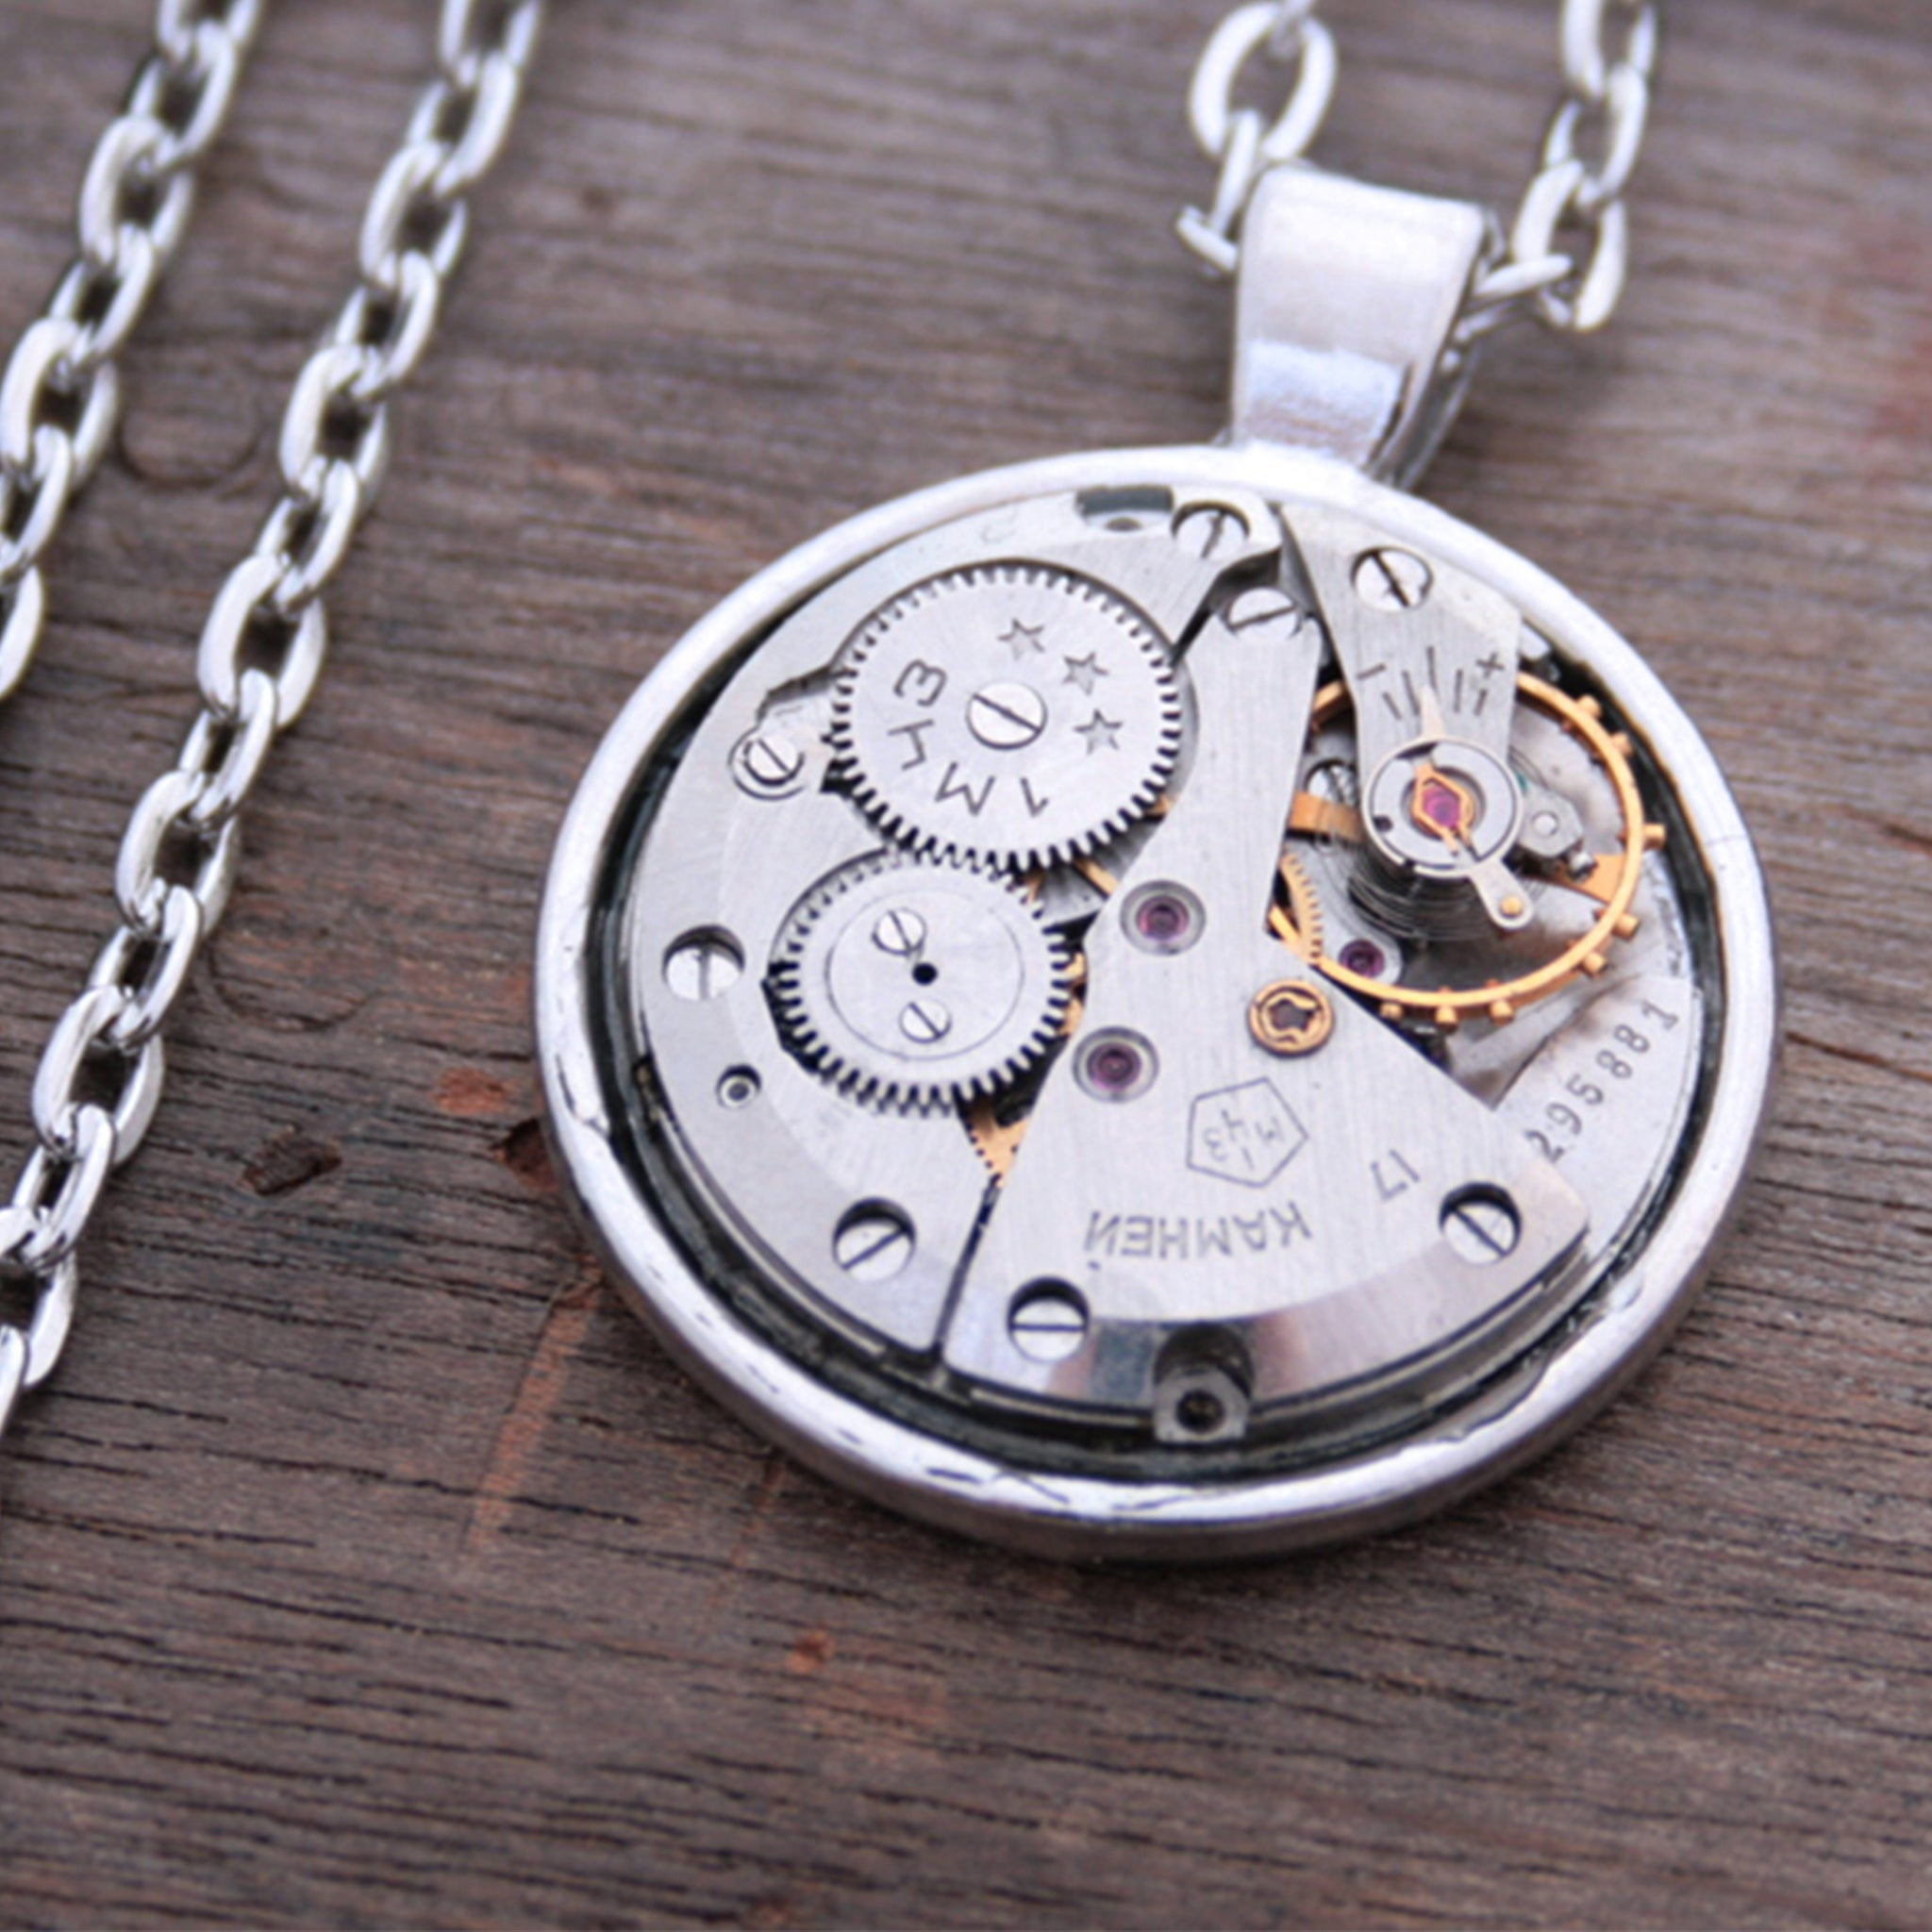 Steampunk Necklace made of watch mechanism